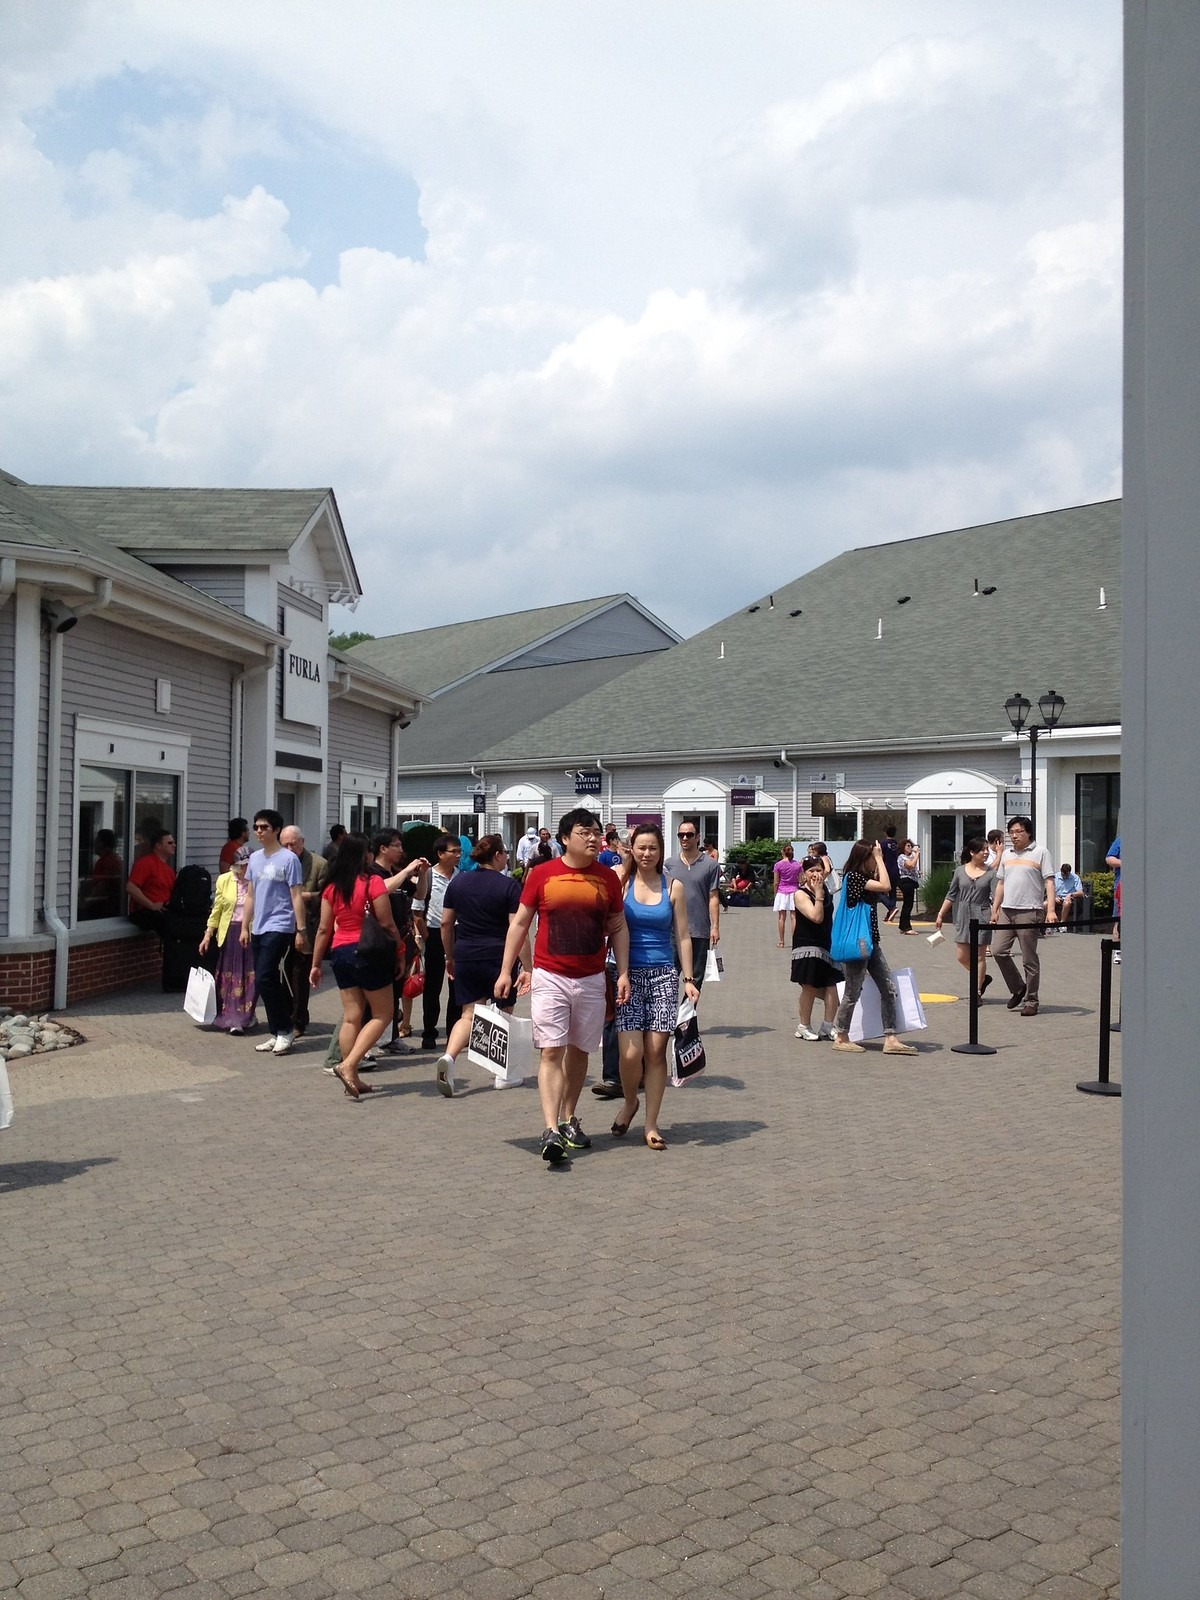 Woodbury (NY) United States  city photos gallery : Woodbury Common Premium Outlets – New York State | Tripomatic